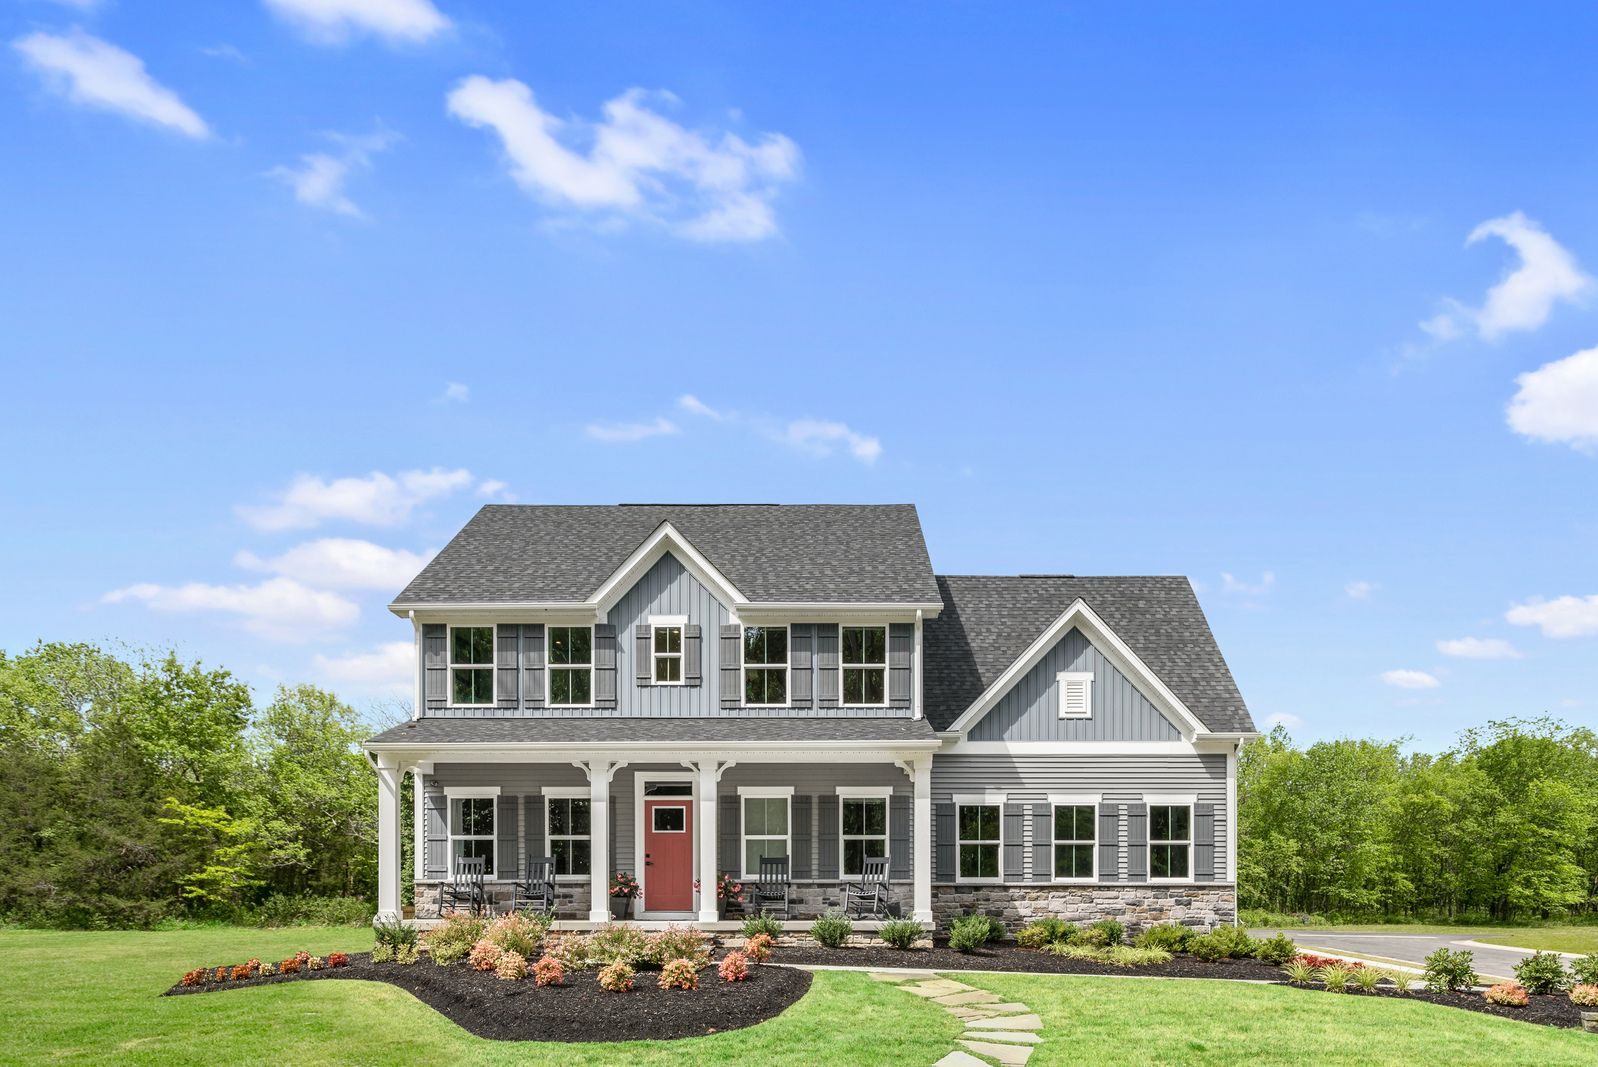 WELCOME TO GRANVILLE ESTATES, SINGLE-FAMILY HOMES on 1.5+ acre homesites FROM THE UPPER $500S!